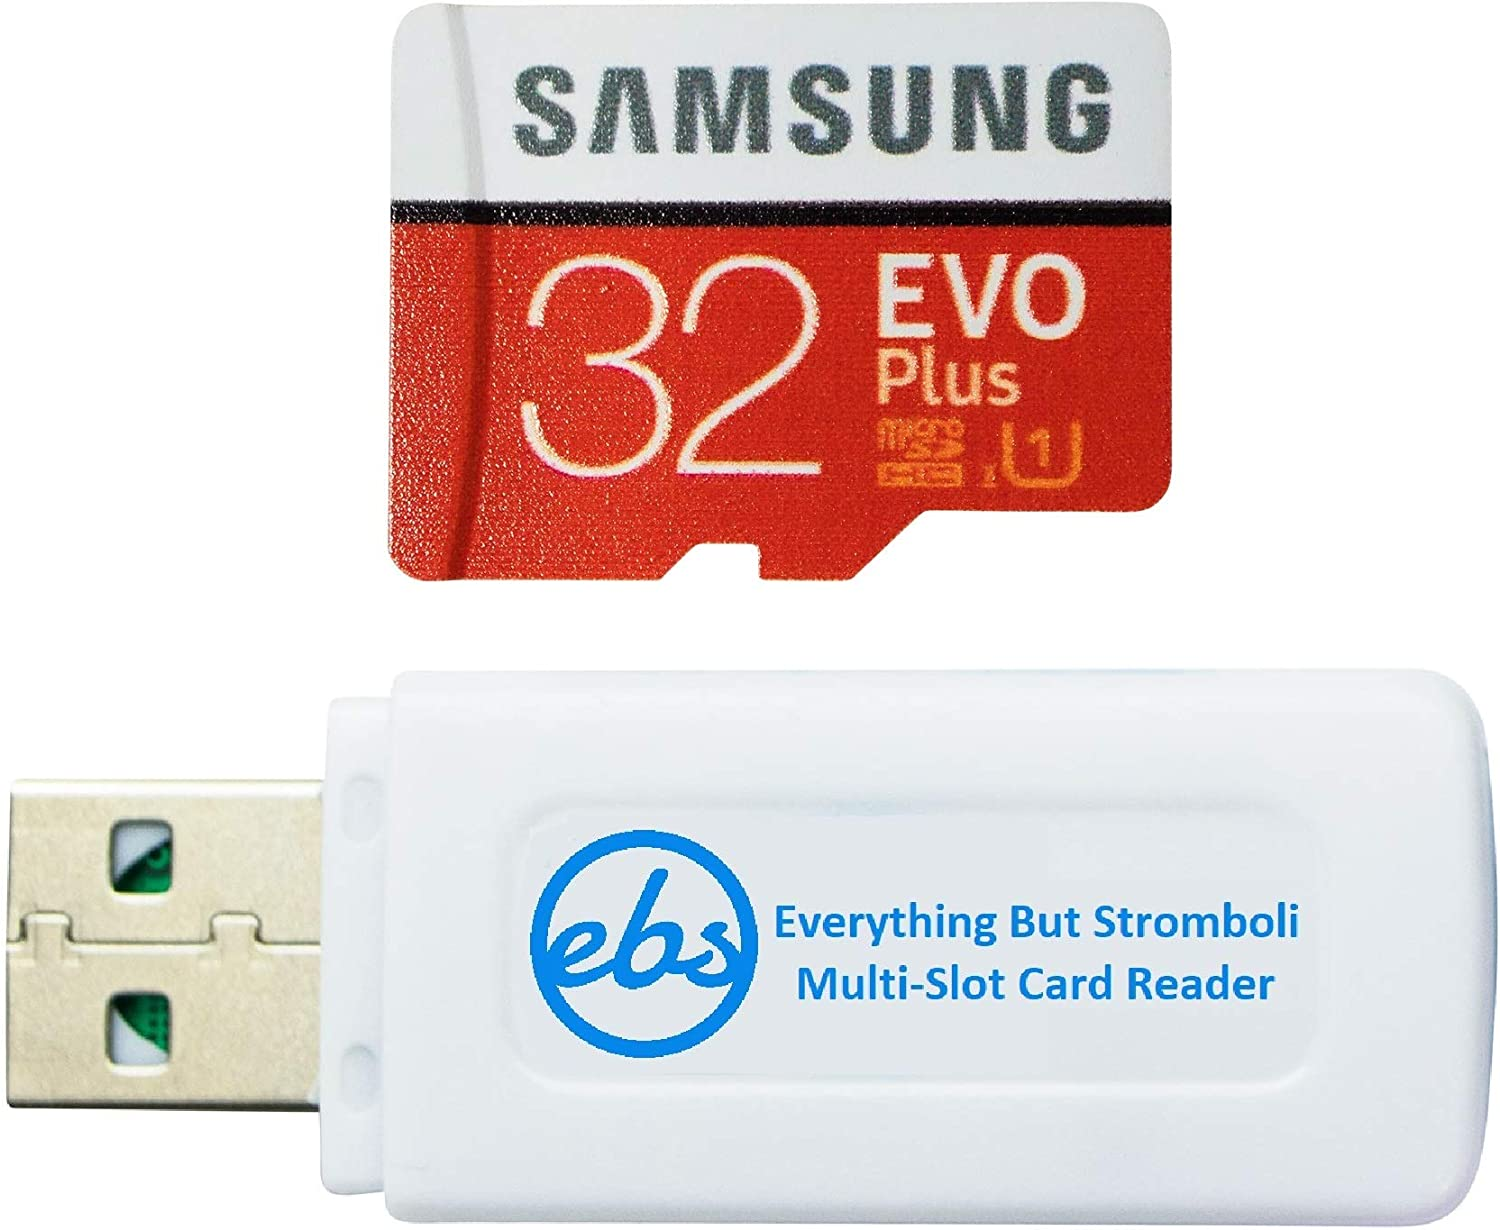 Samsung Evo Plus 32GB Micro SDHC Memory Card Class 10 for Smartphones Works with LG G8X ThinQ, LG Stylo 6, LG K31 Phone (MB-MC32) Bundle with (1) Everything But Stromboli MicroSD & SD Card Reader